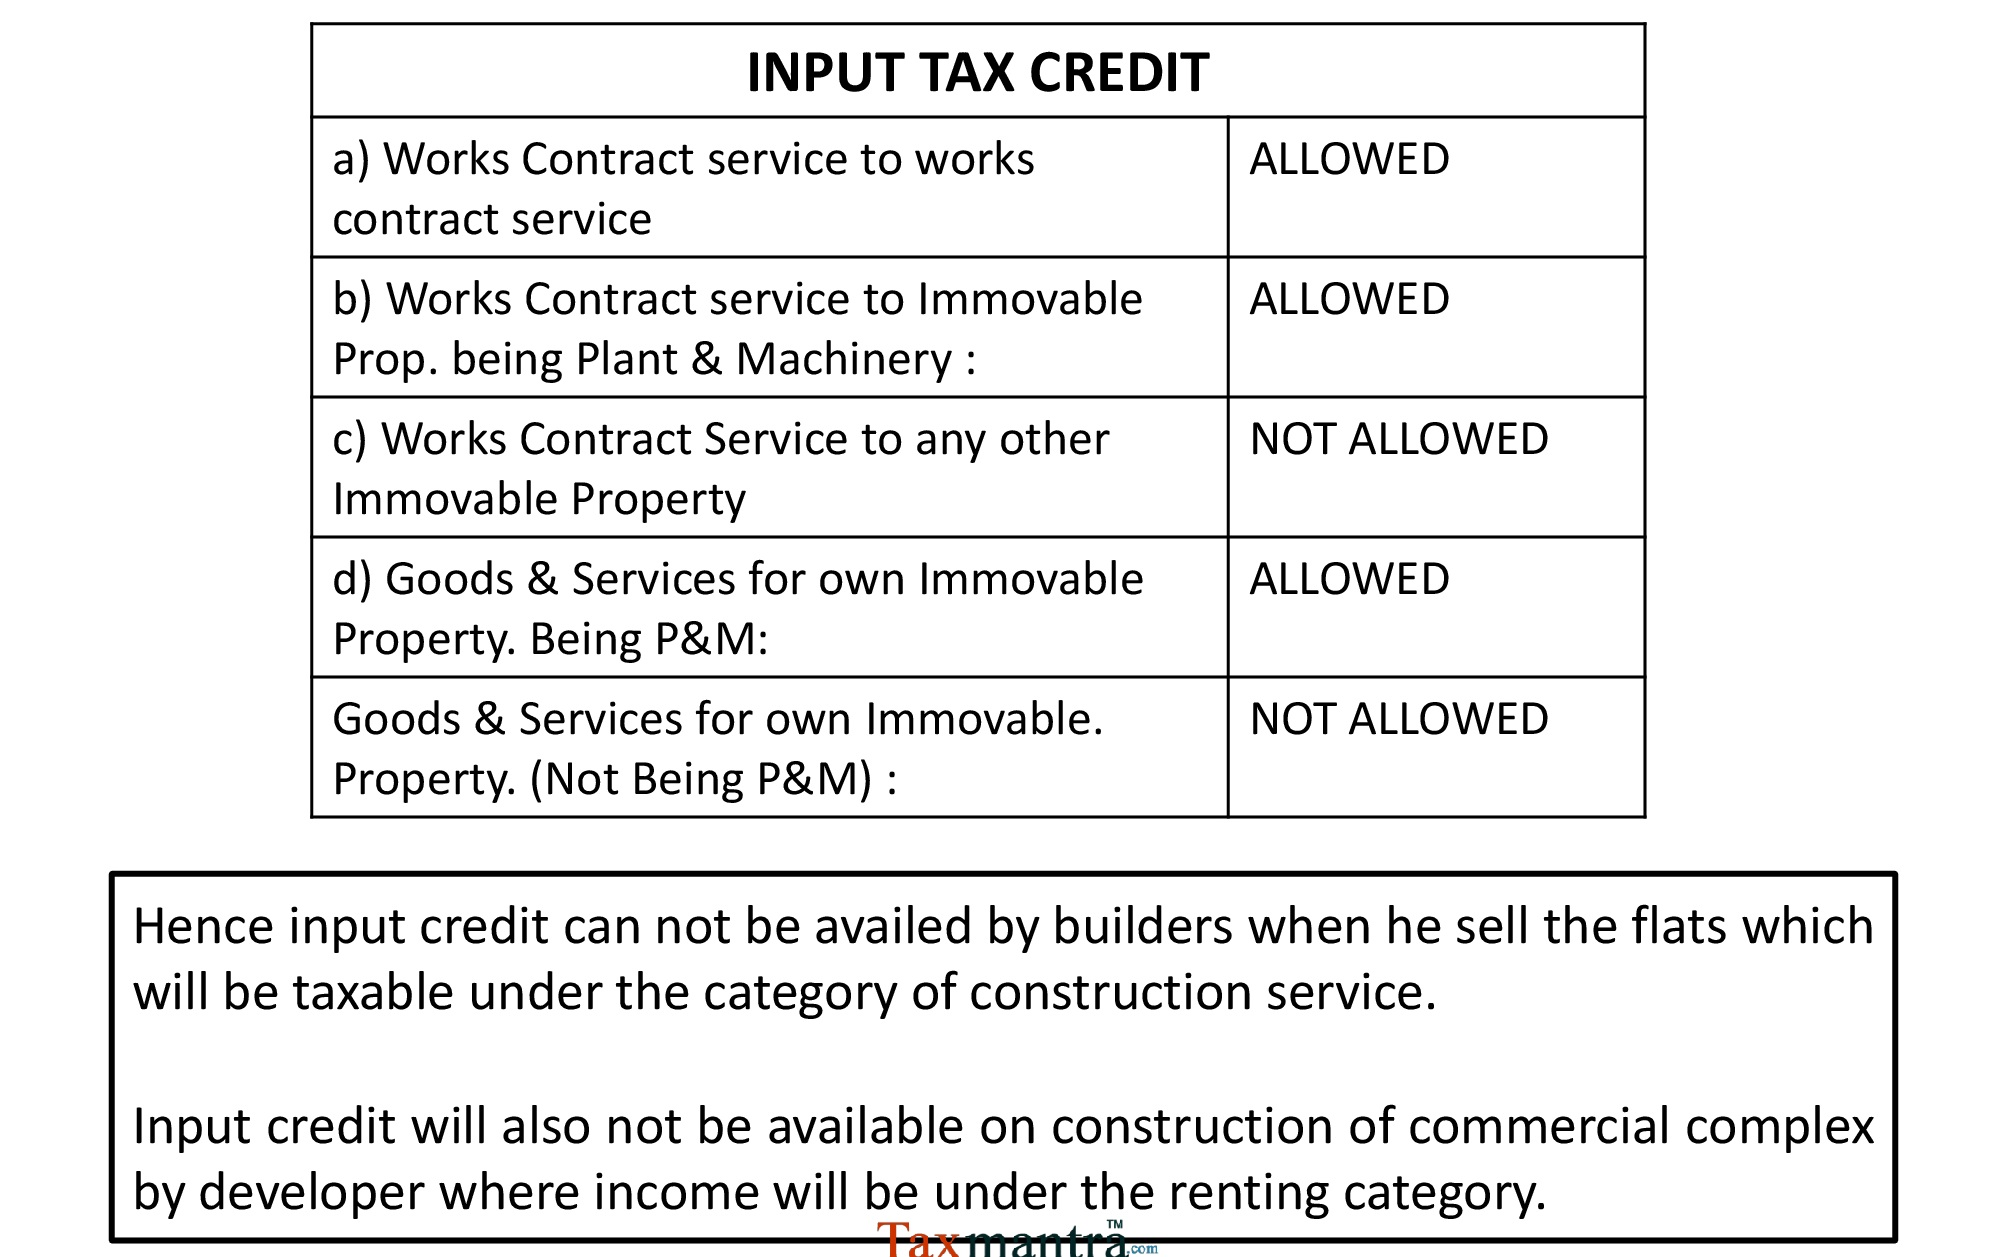 CONCEPT OF INPUT TAX CREDIT IN REAL ESTATE INDUSTRY.  e2bfd749a04aba6c4530ccde3c801dd7-13